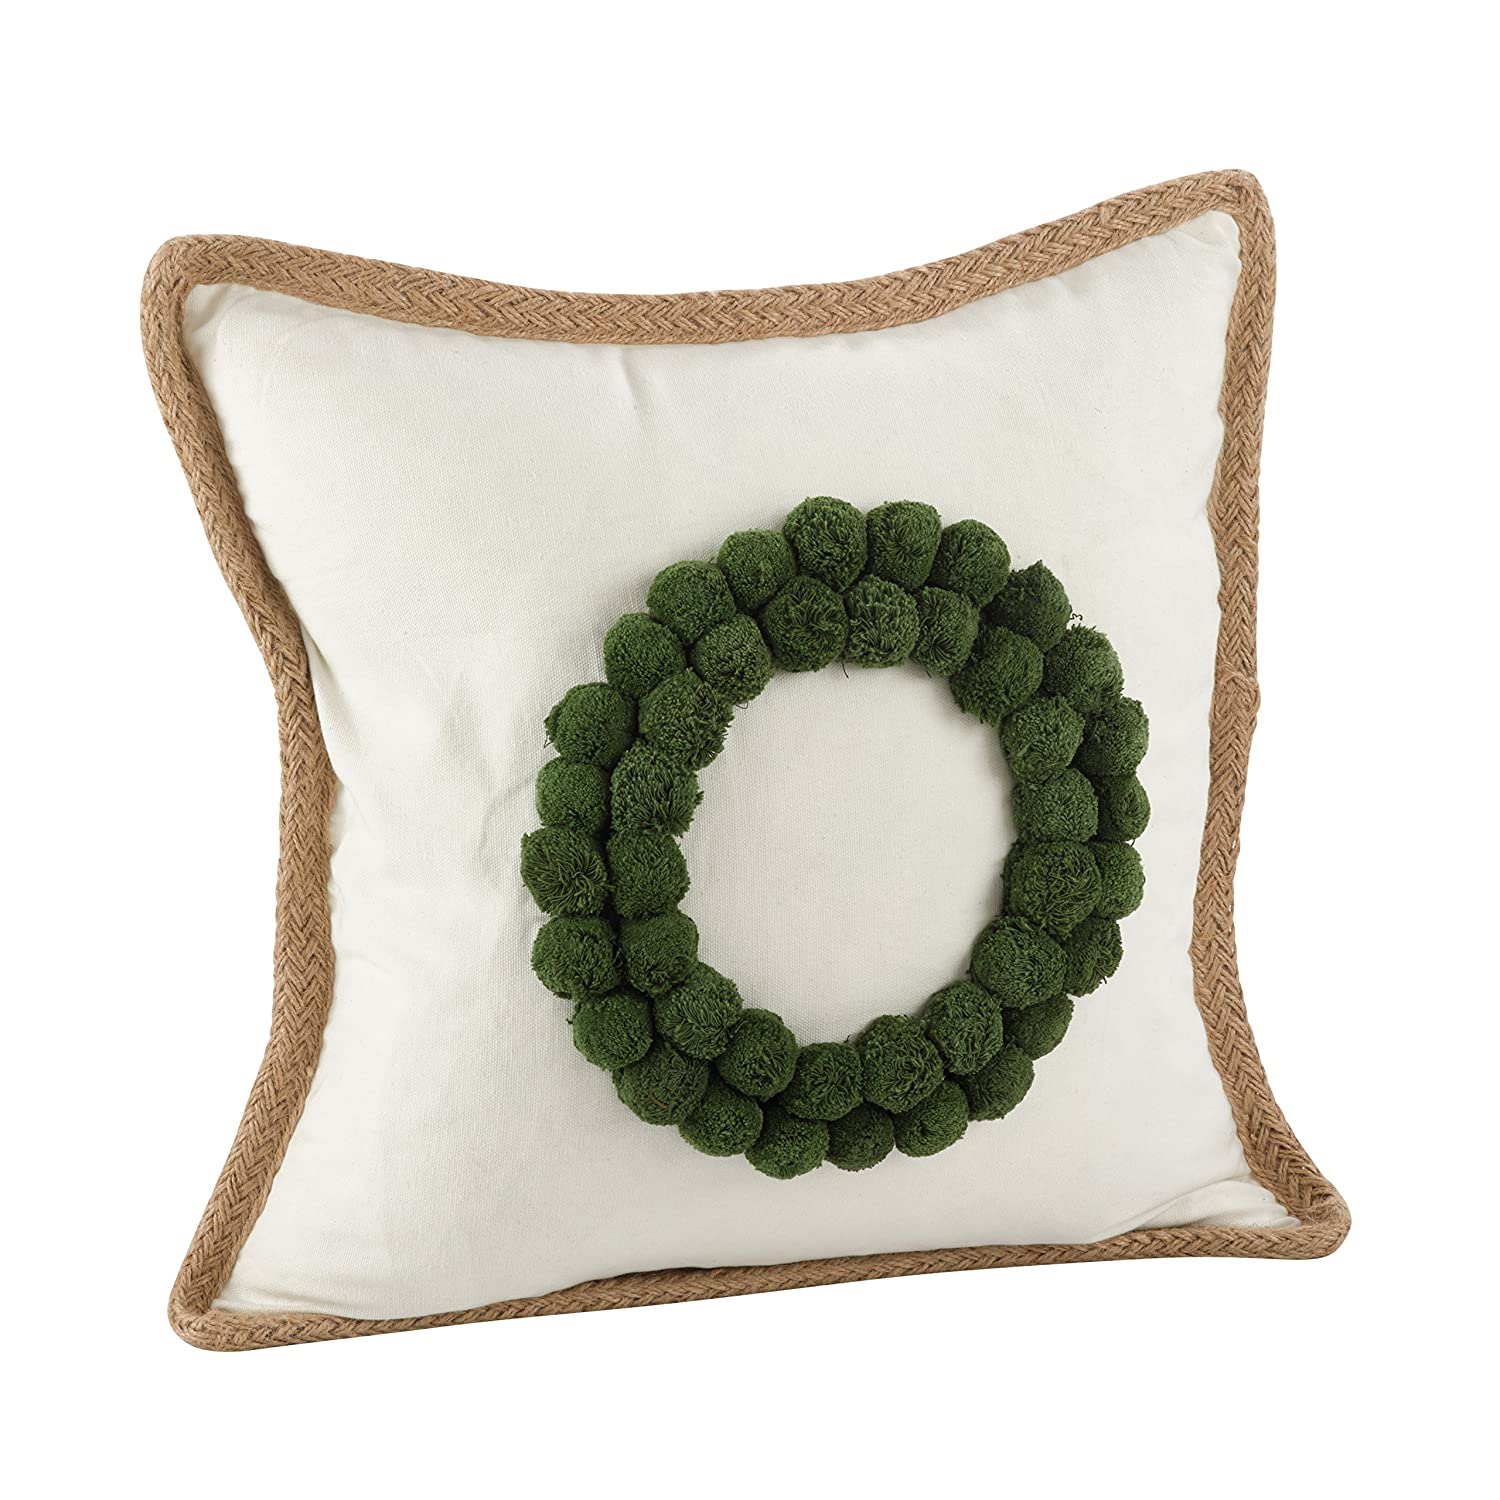 SARO LIFESTYLE Filled Ricamato Design Pillow, 18', Circle